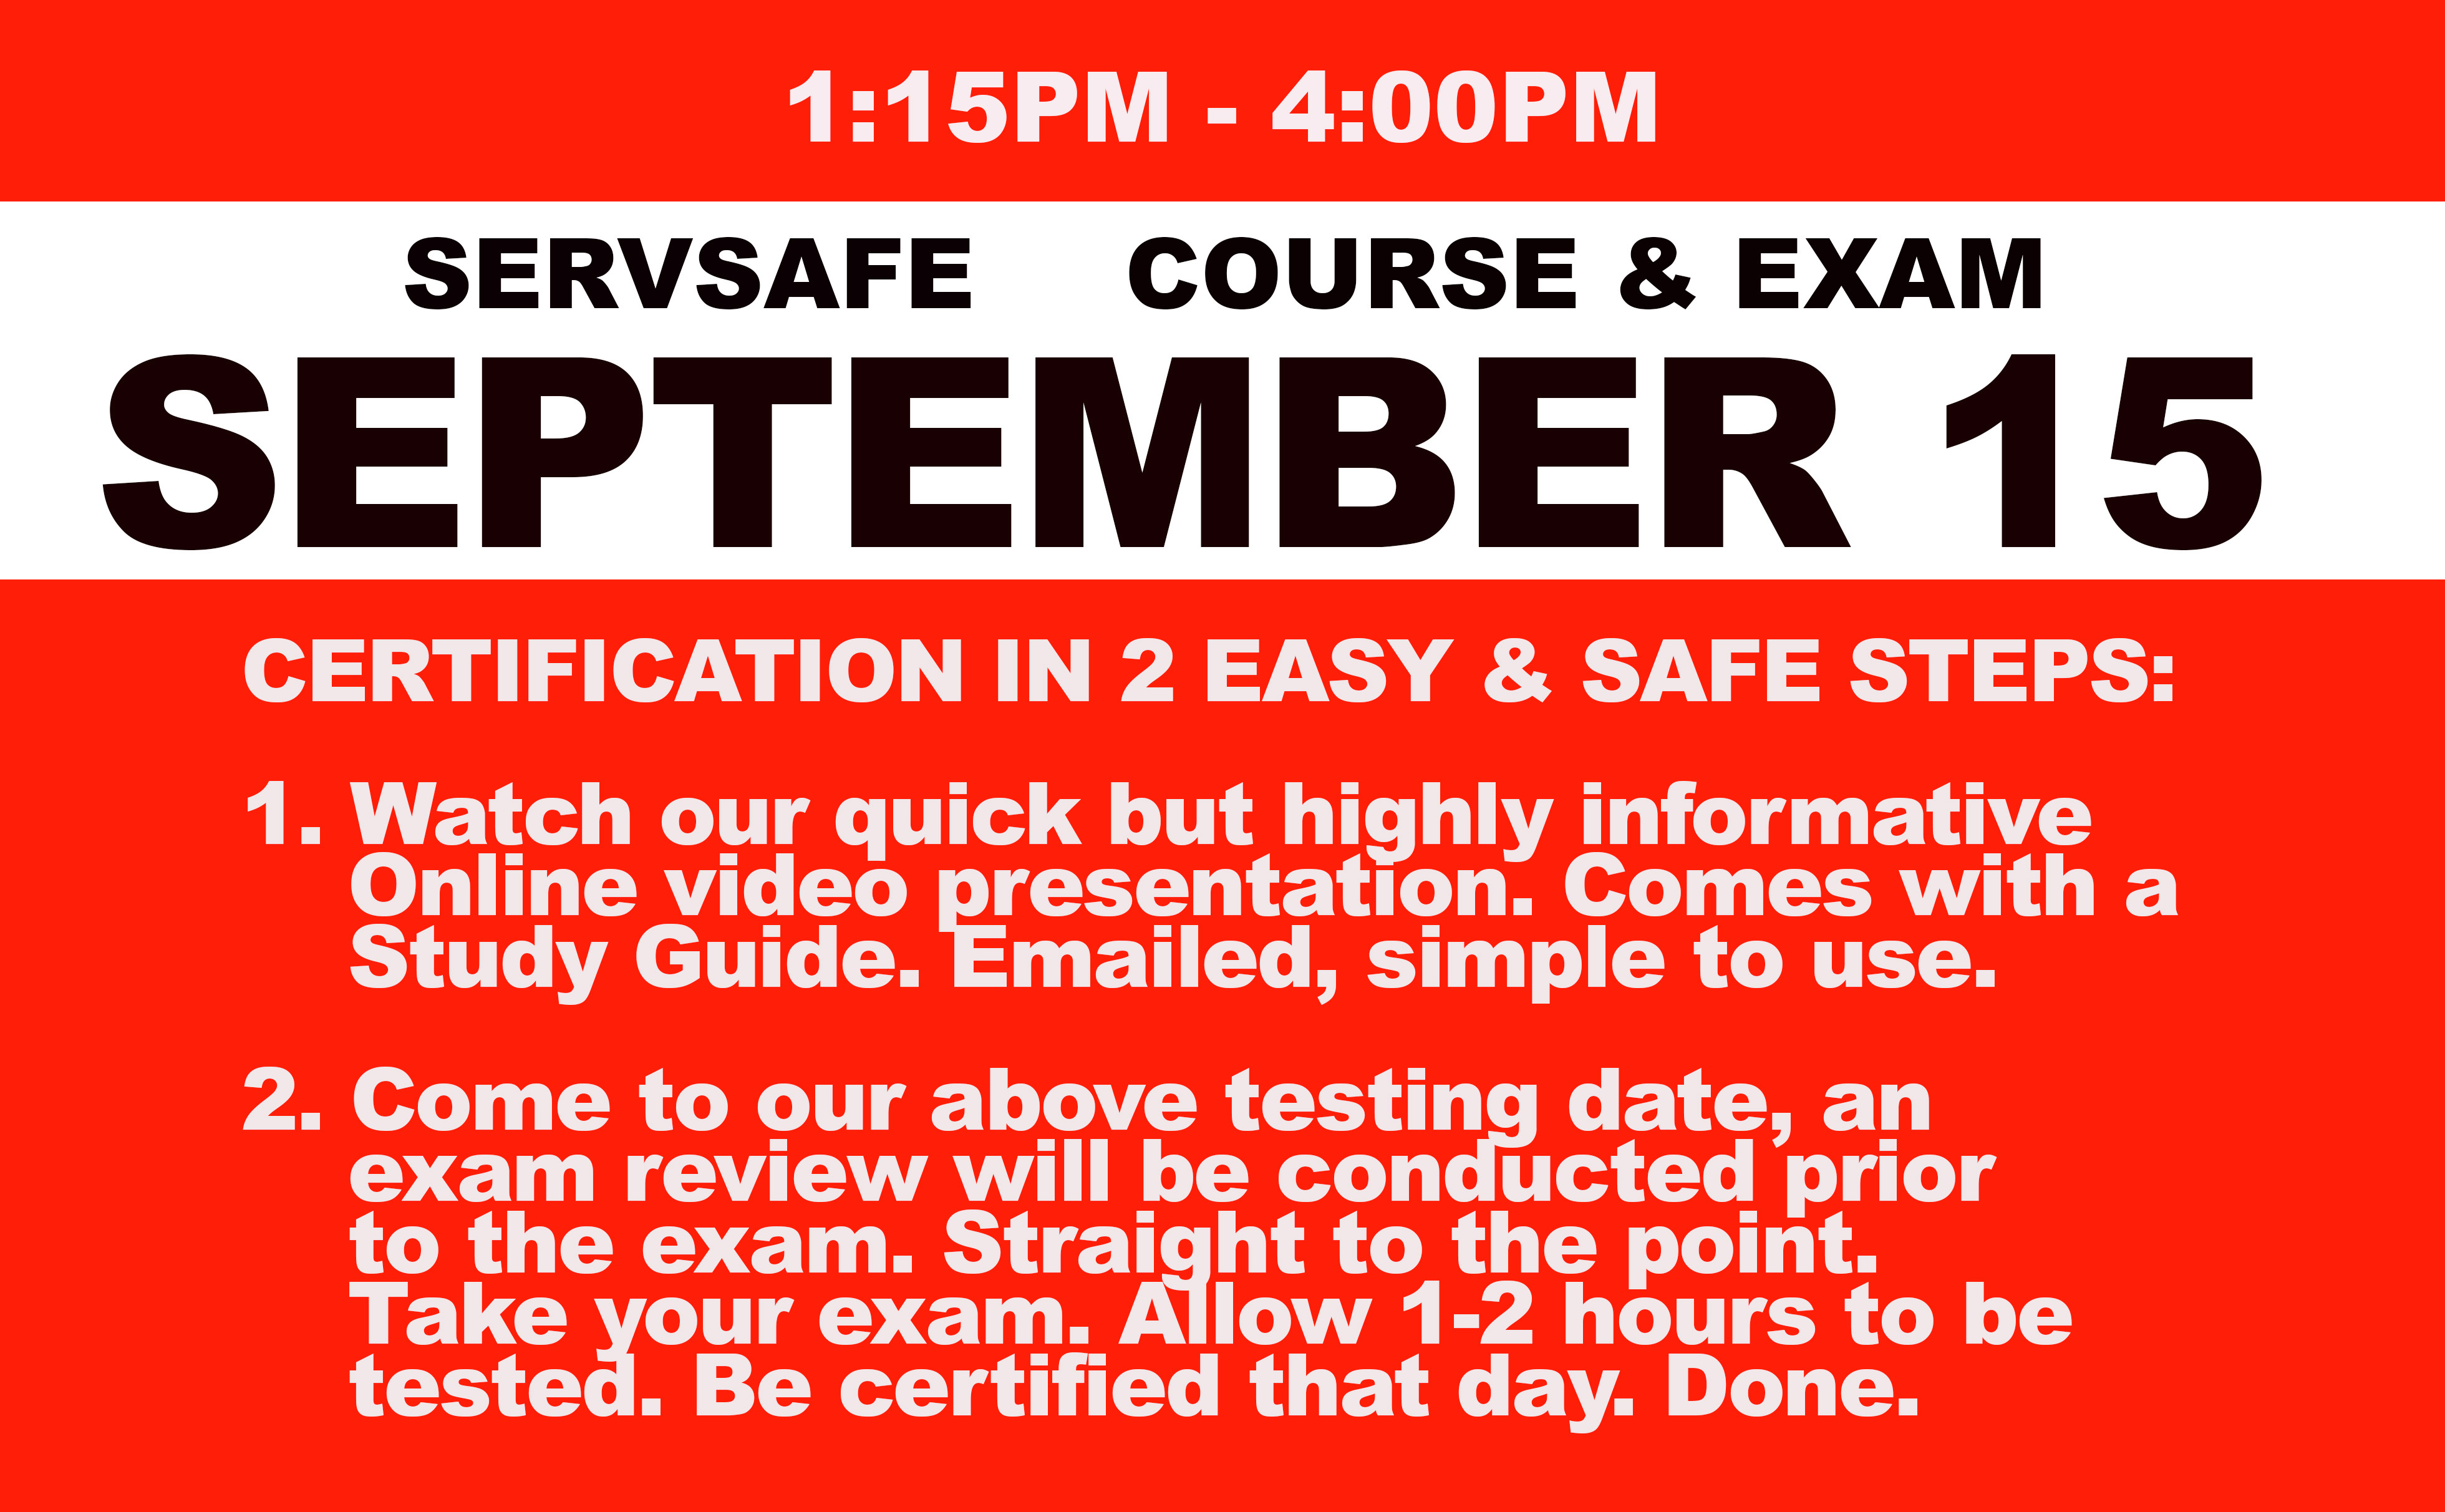 Online Course + Exam- Wed. September 15